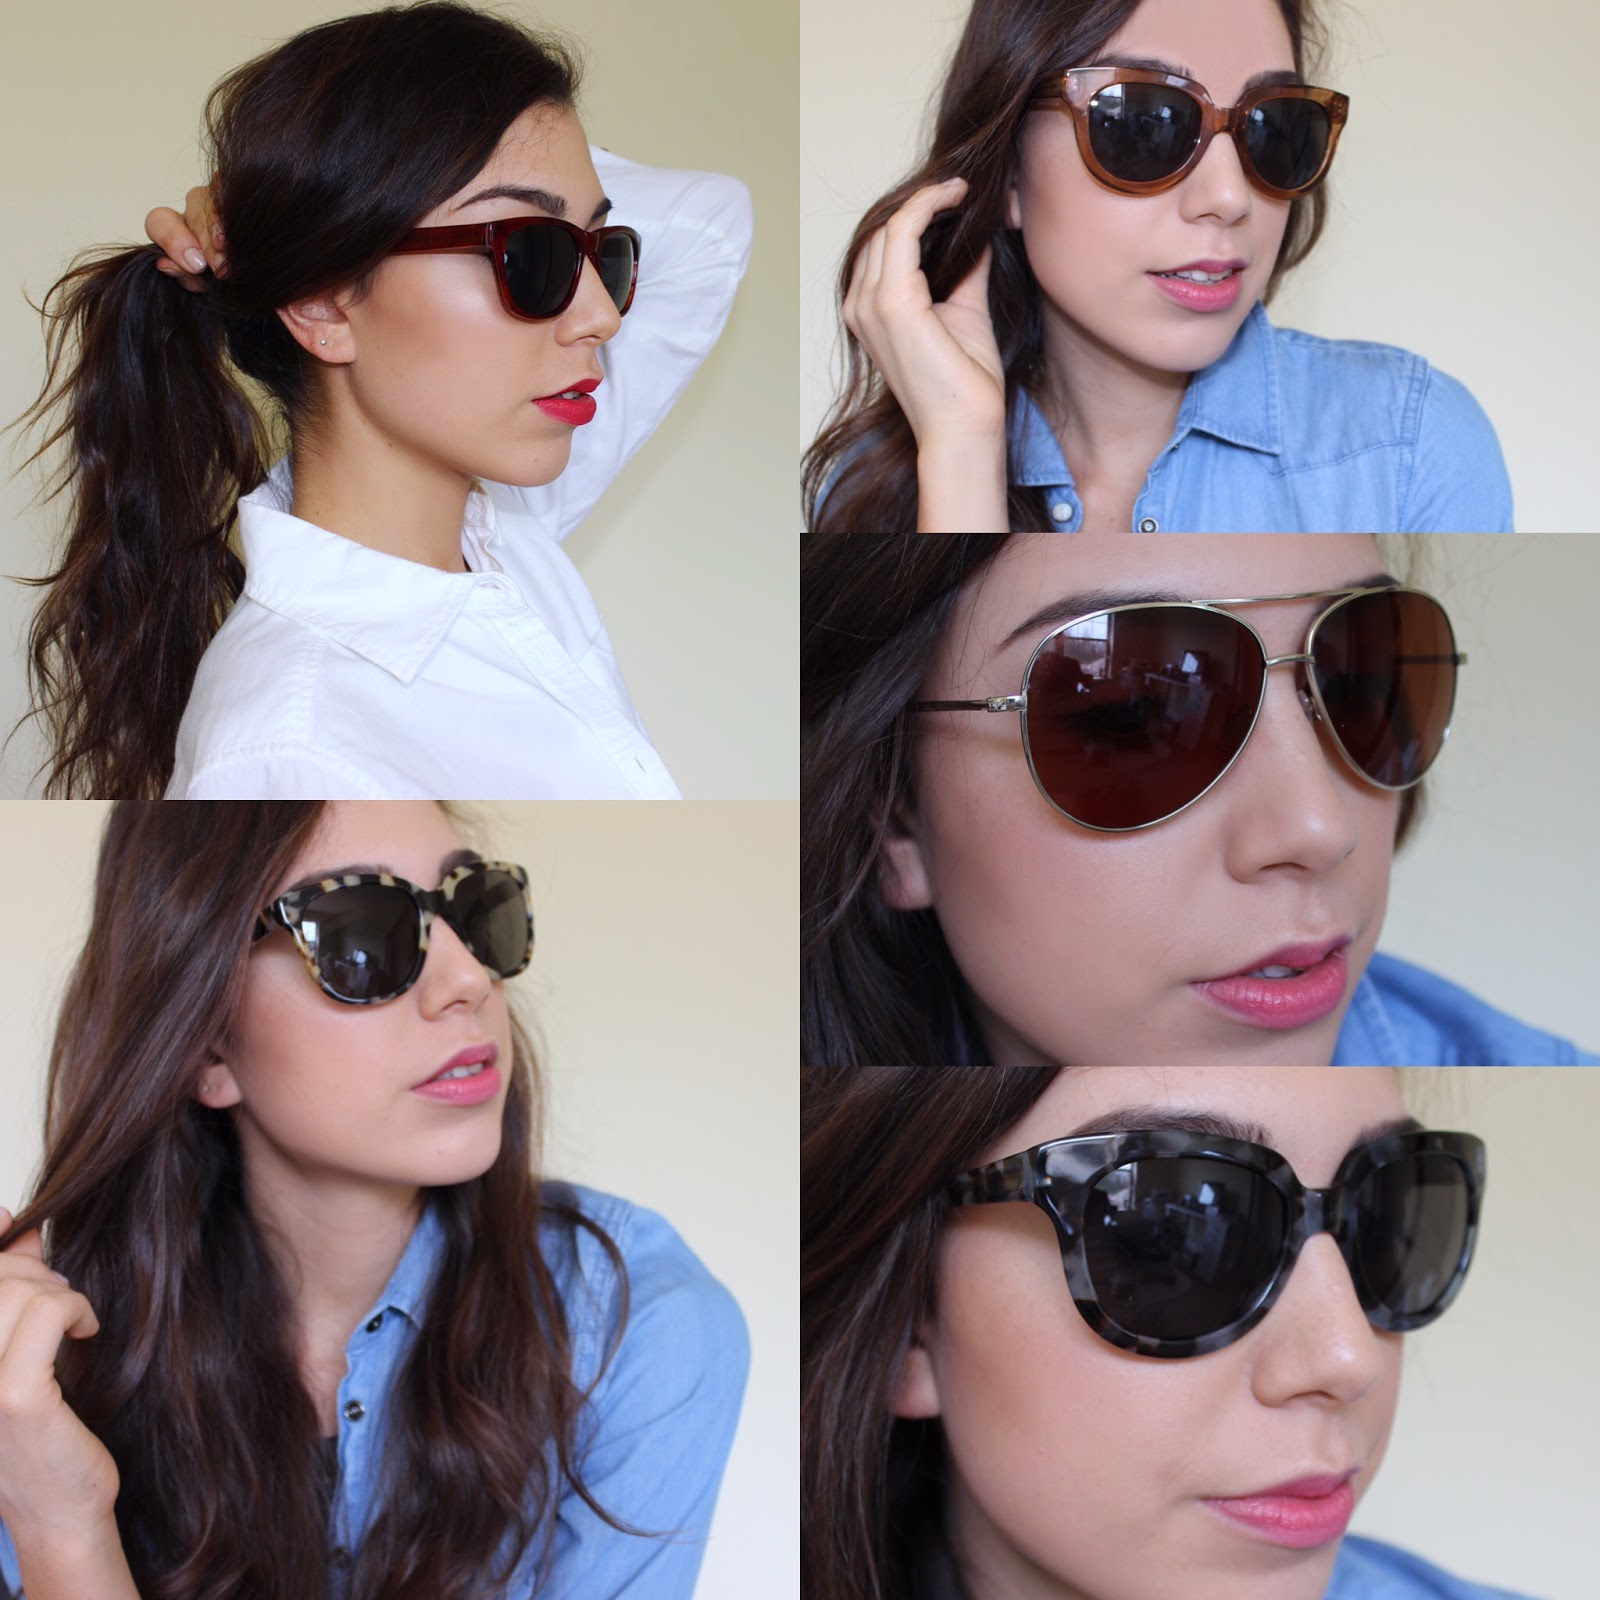 93a285e1176 Today I m so excited to share with you my review on Warby Parker s Home Try  On program. Warby Parker is a high quality eyeware brand